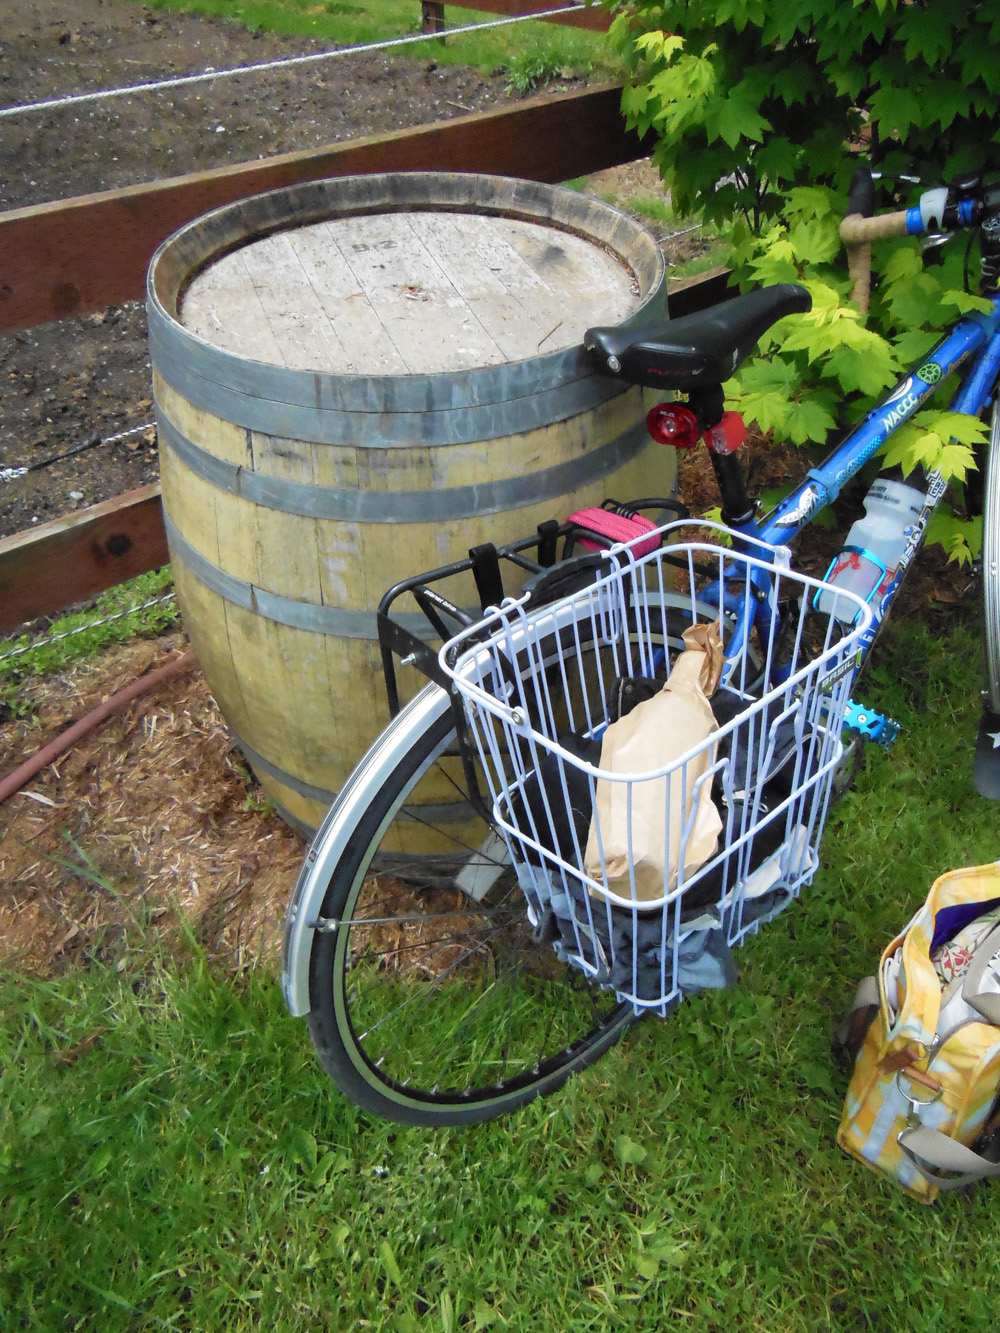 Cycle Whidbey Island  - First bottle of wine in rack